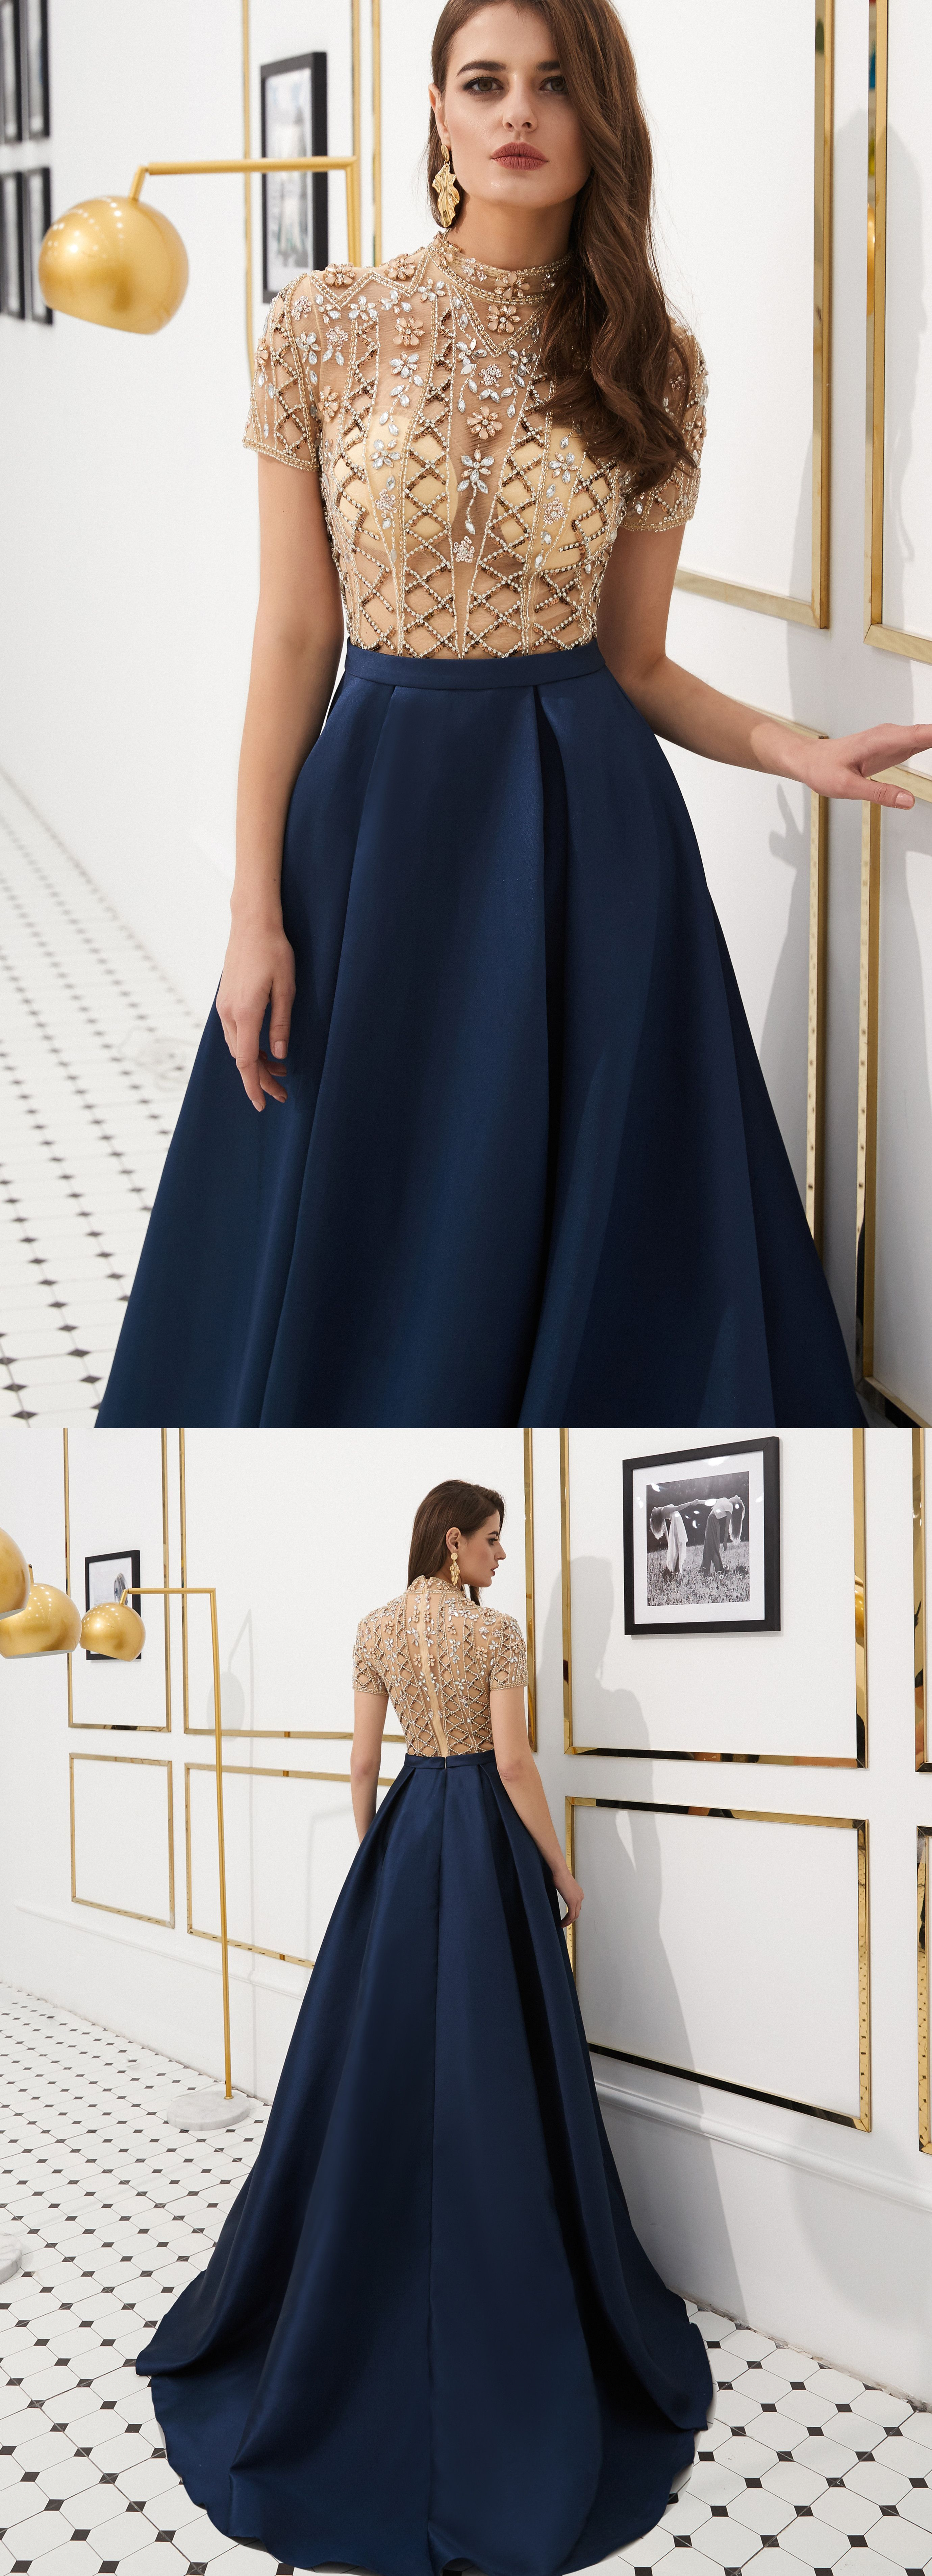 luxurious #delivery #hanmade #dresses #navy #blue #prom #high